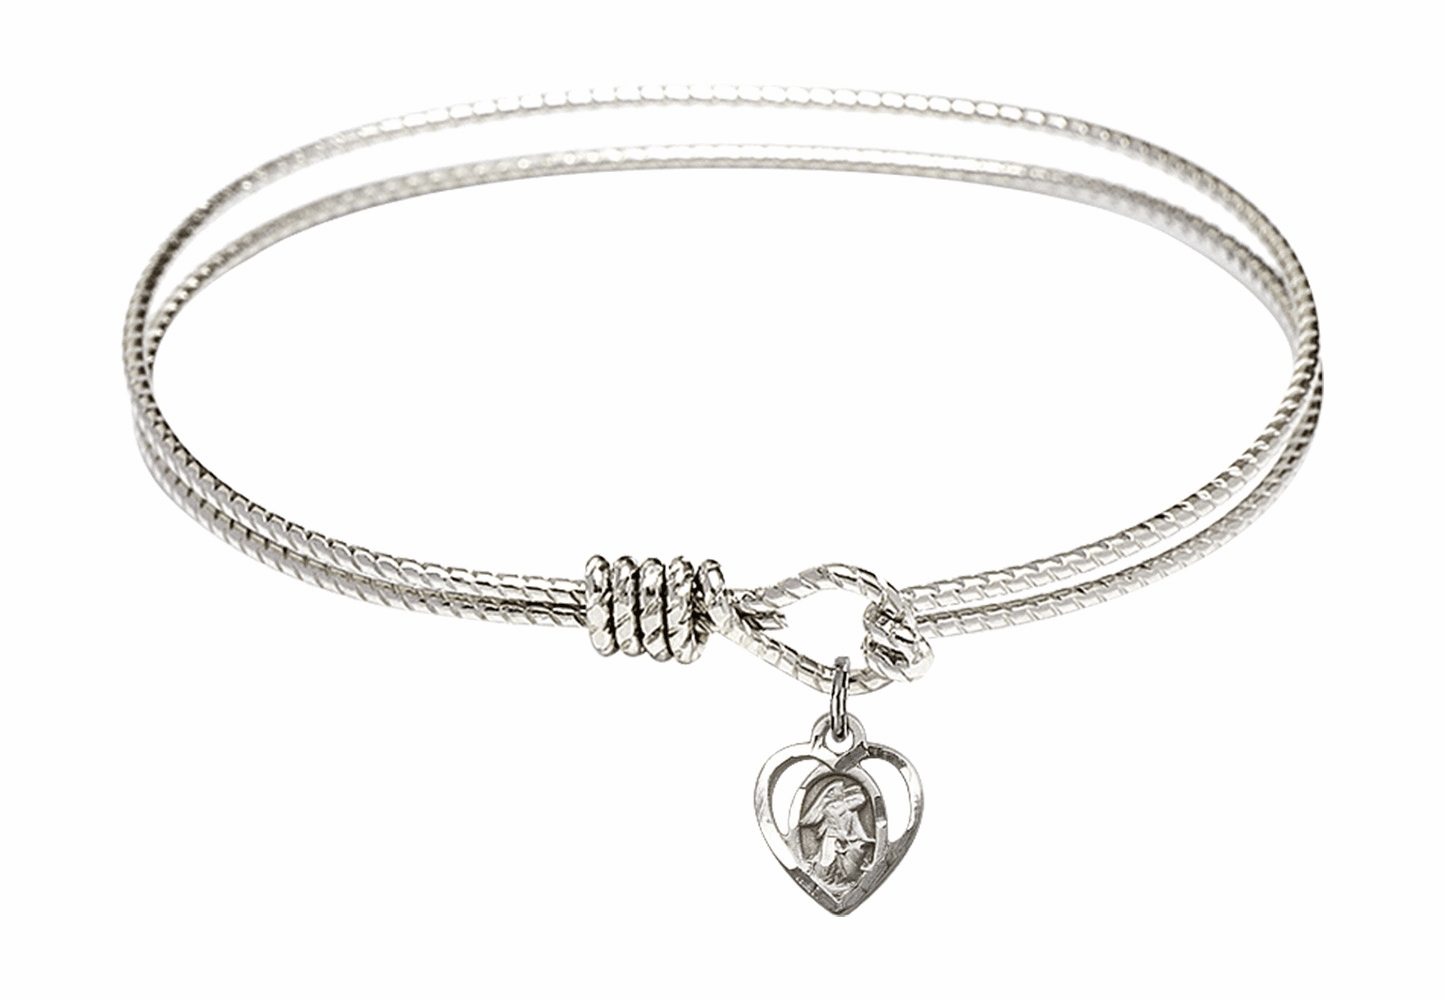 Round Twist Eye Hook Bangle Bracelet w/Guardian Angel Heart Sterling Silver Charm by Bliss Mfg